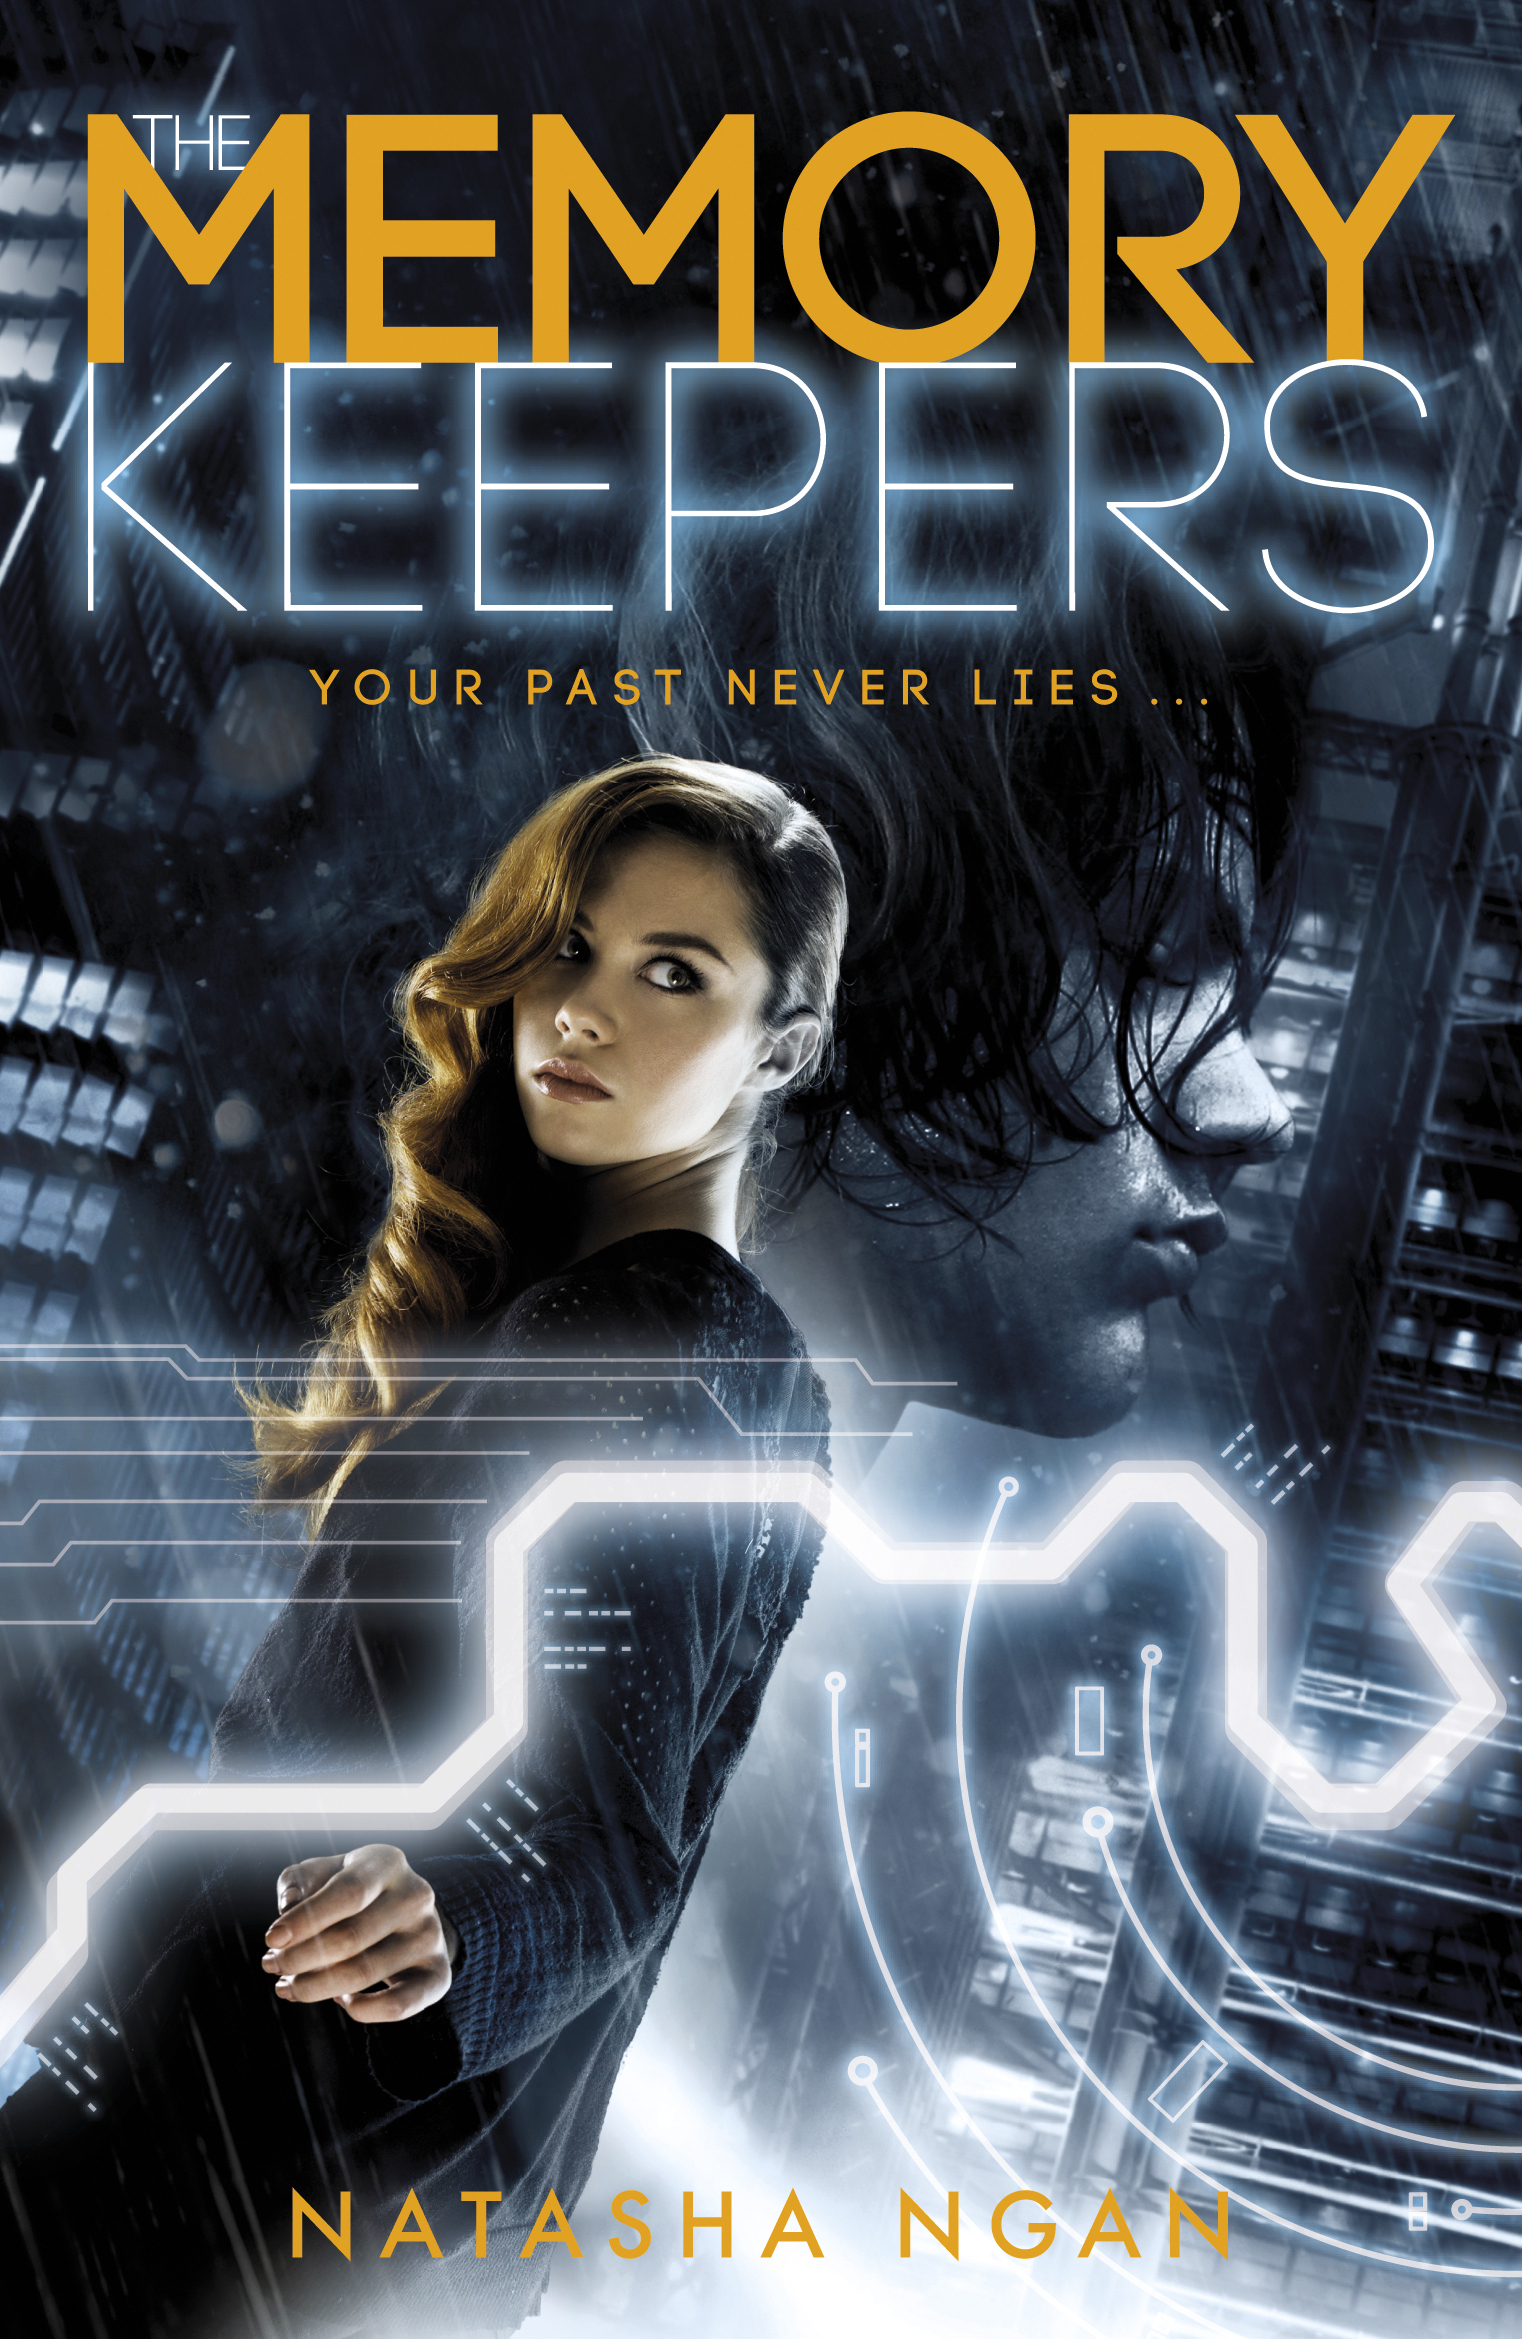 The Memory Keepers by Natasha Ngan cover